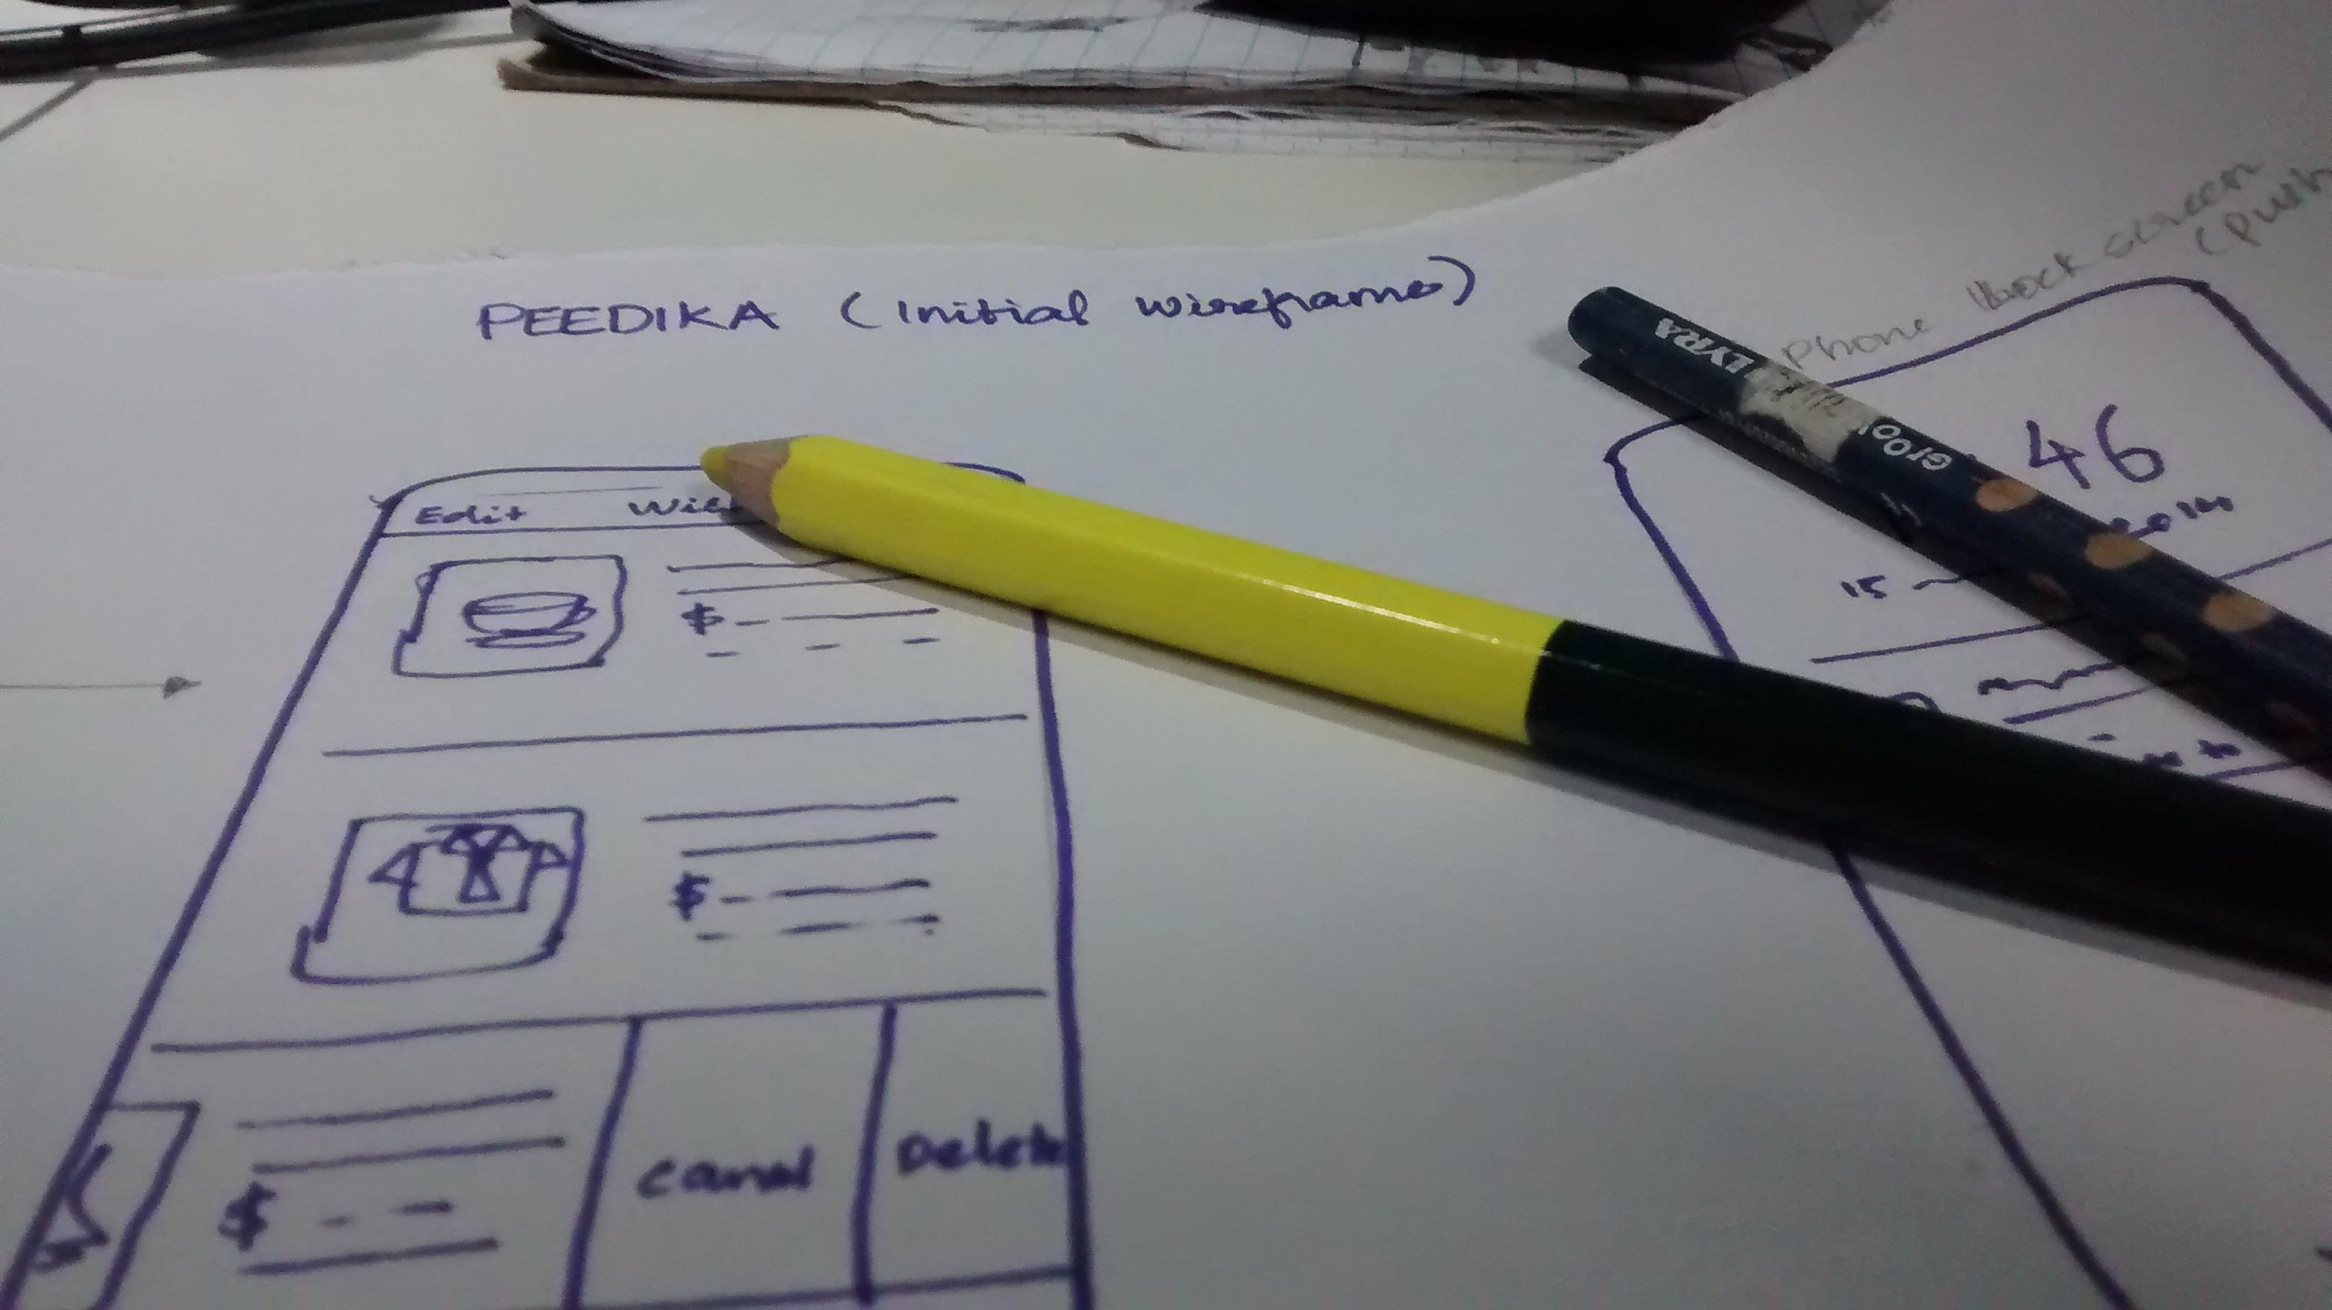 Wireframes by RapidValue